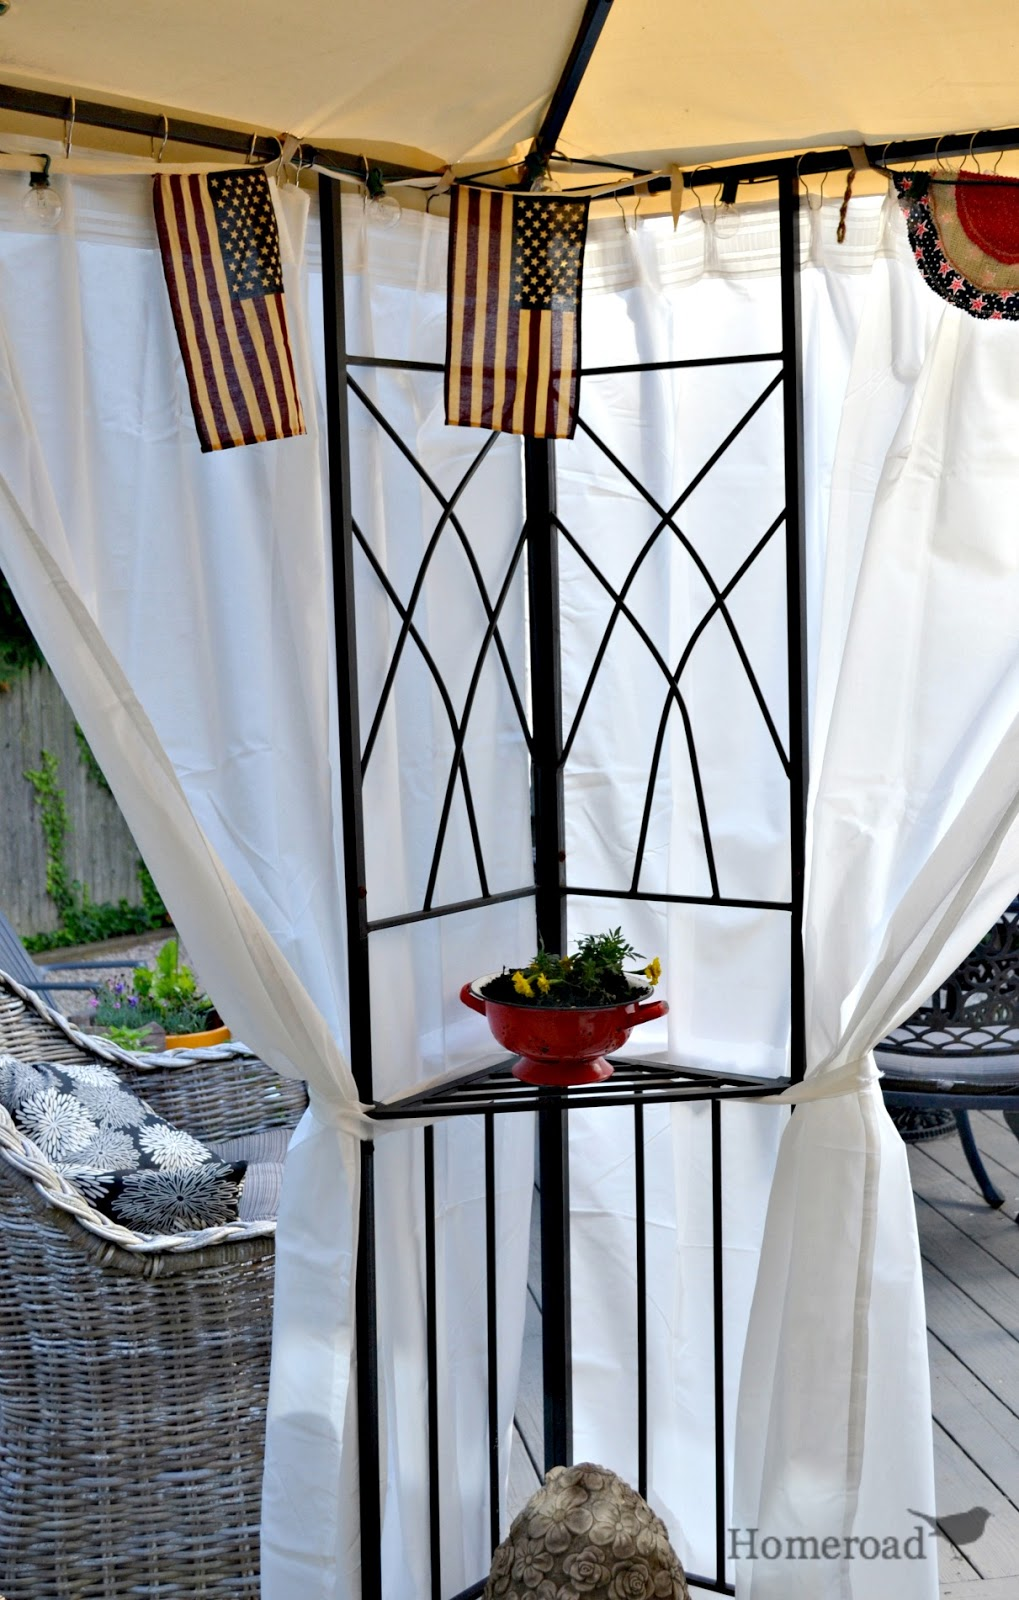 Canopy Curtains homeroad: diy outdoor canopy curtains